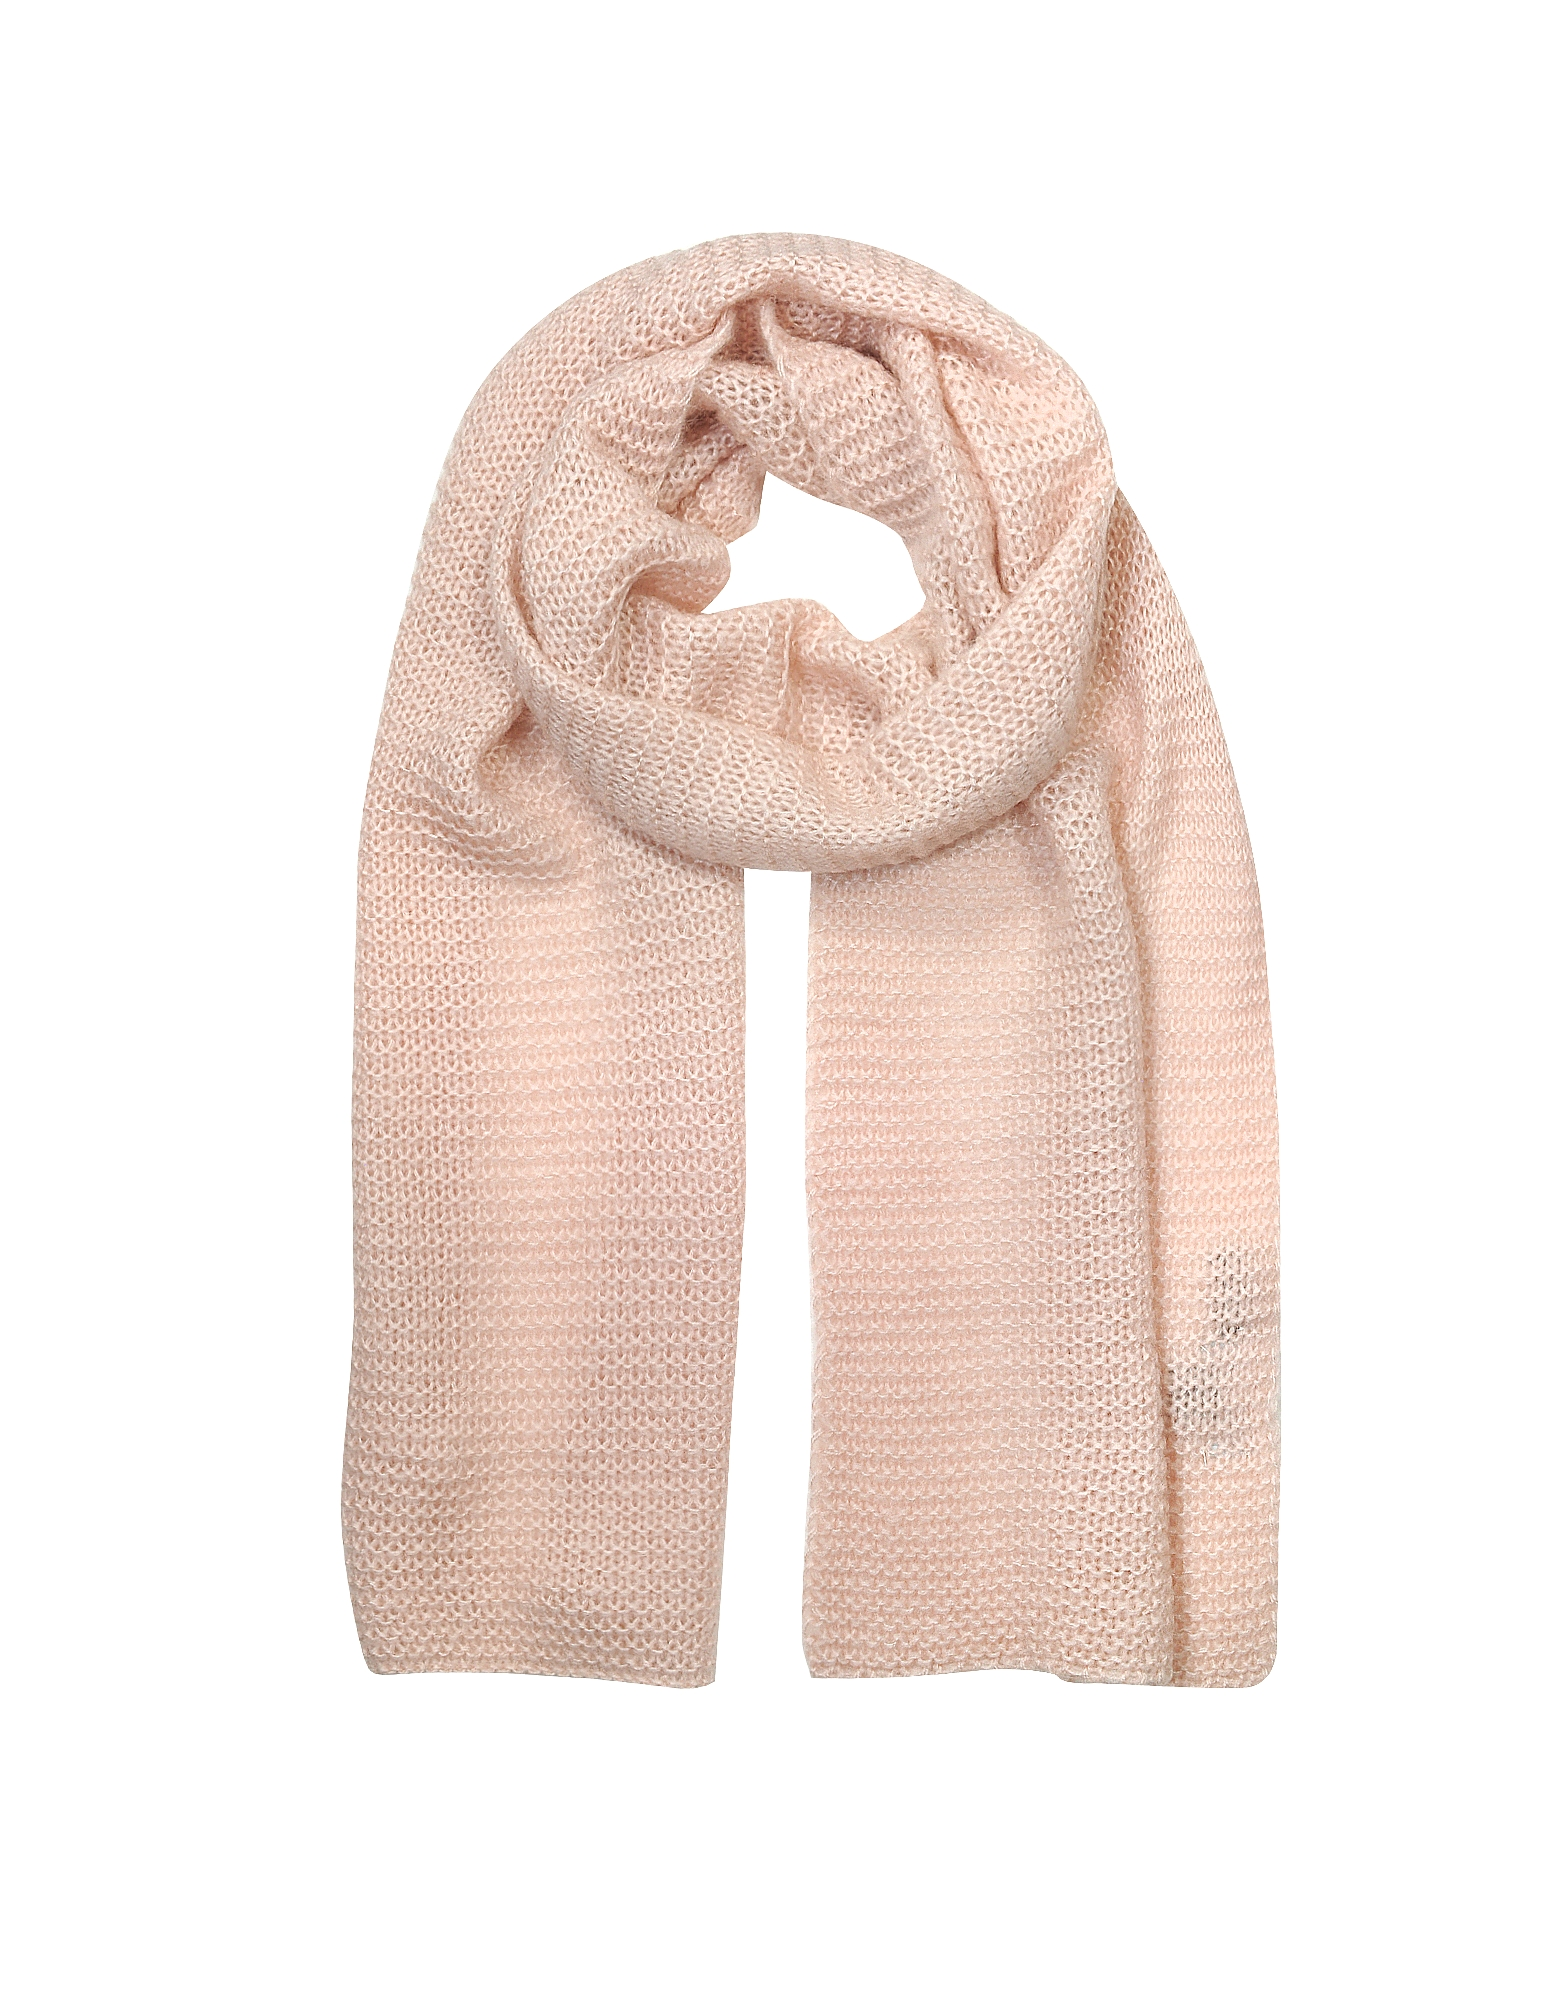 Marina D'Este Designer Scarves, Light Pink Wool Blend Women's Scarf